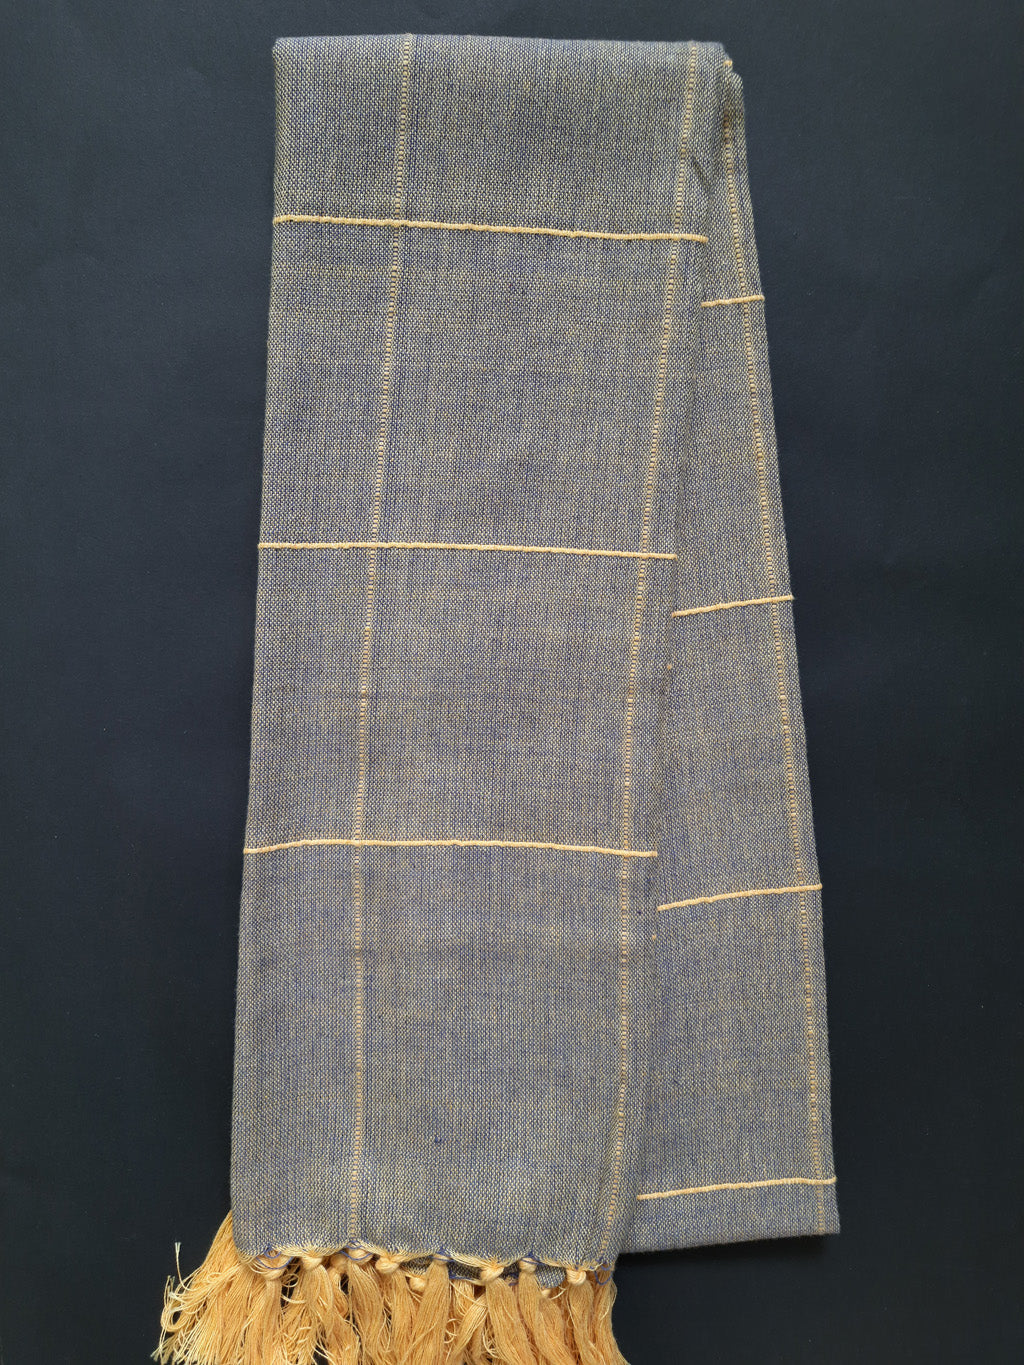 Bekar Ash Handwoven scarf with yellow stripes - Dhi